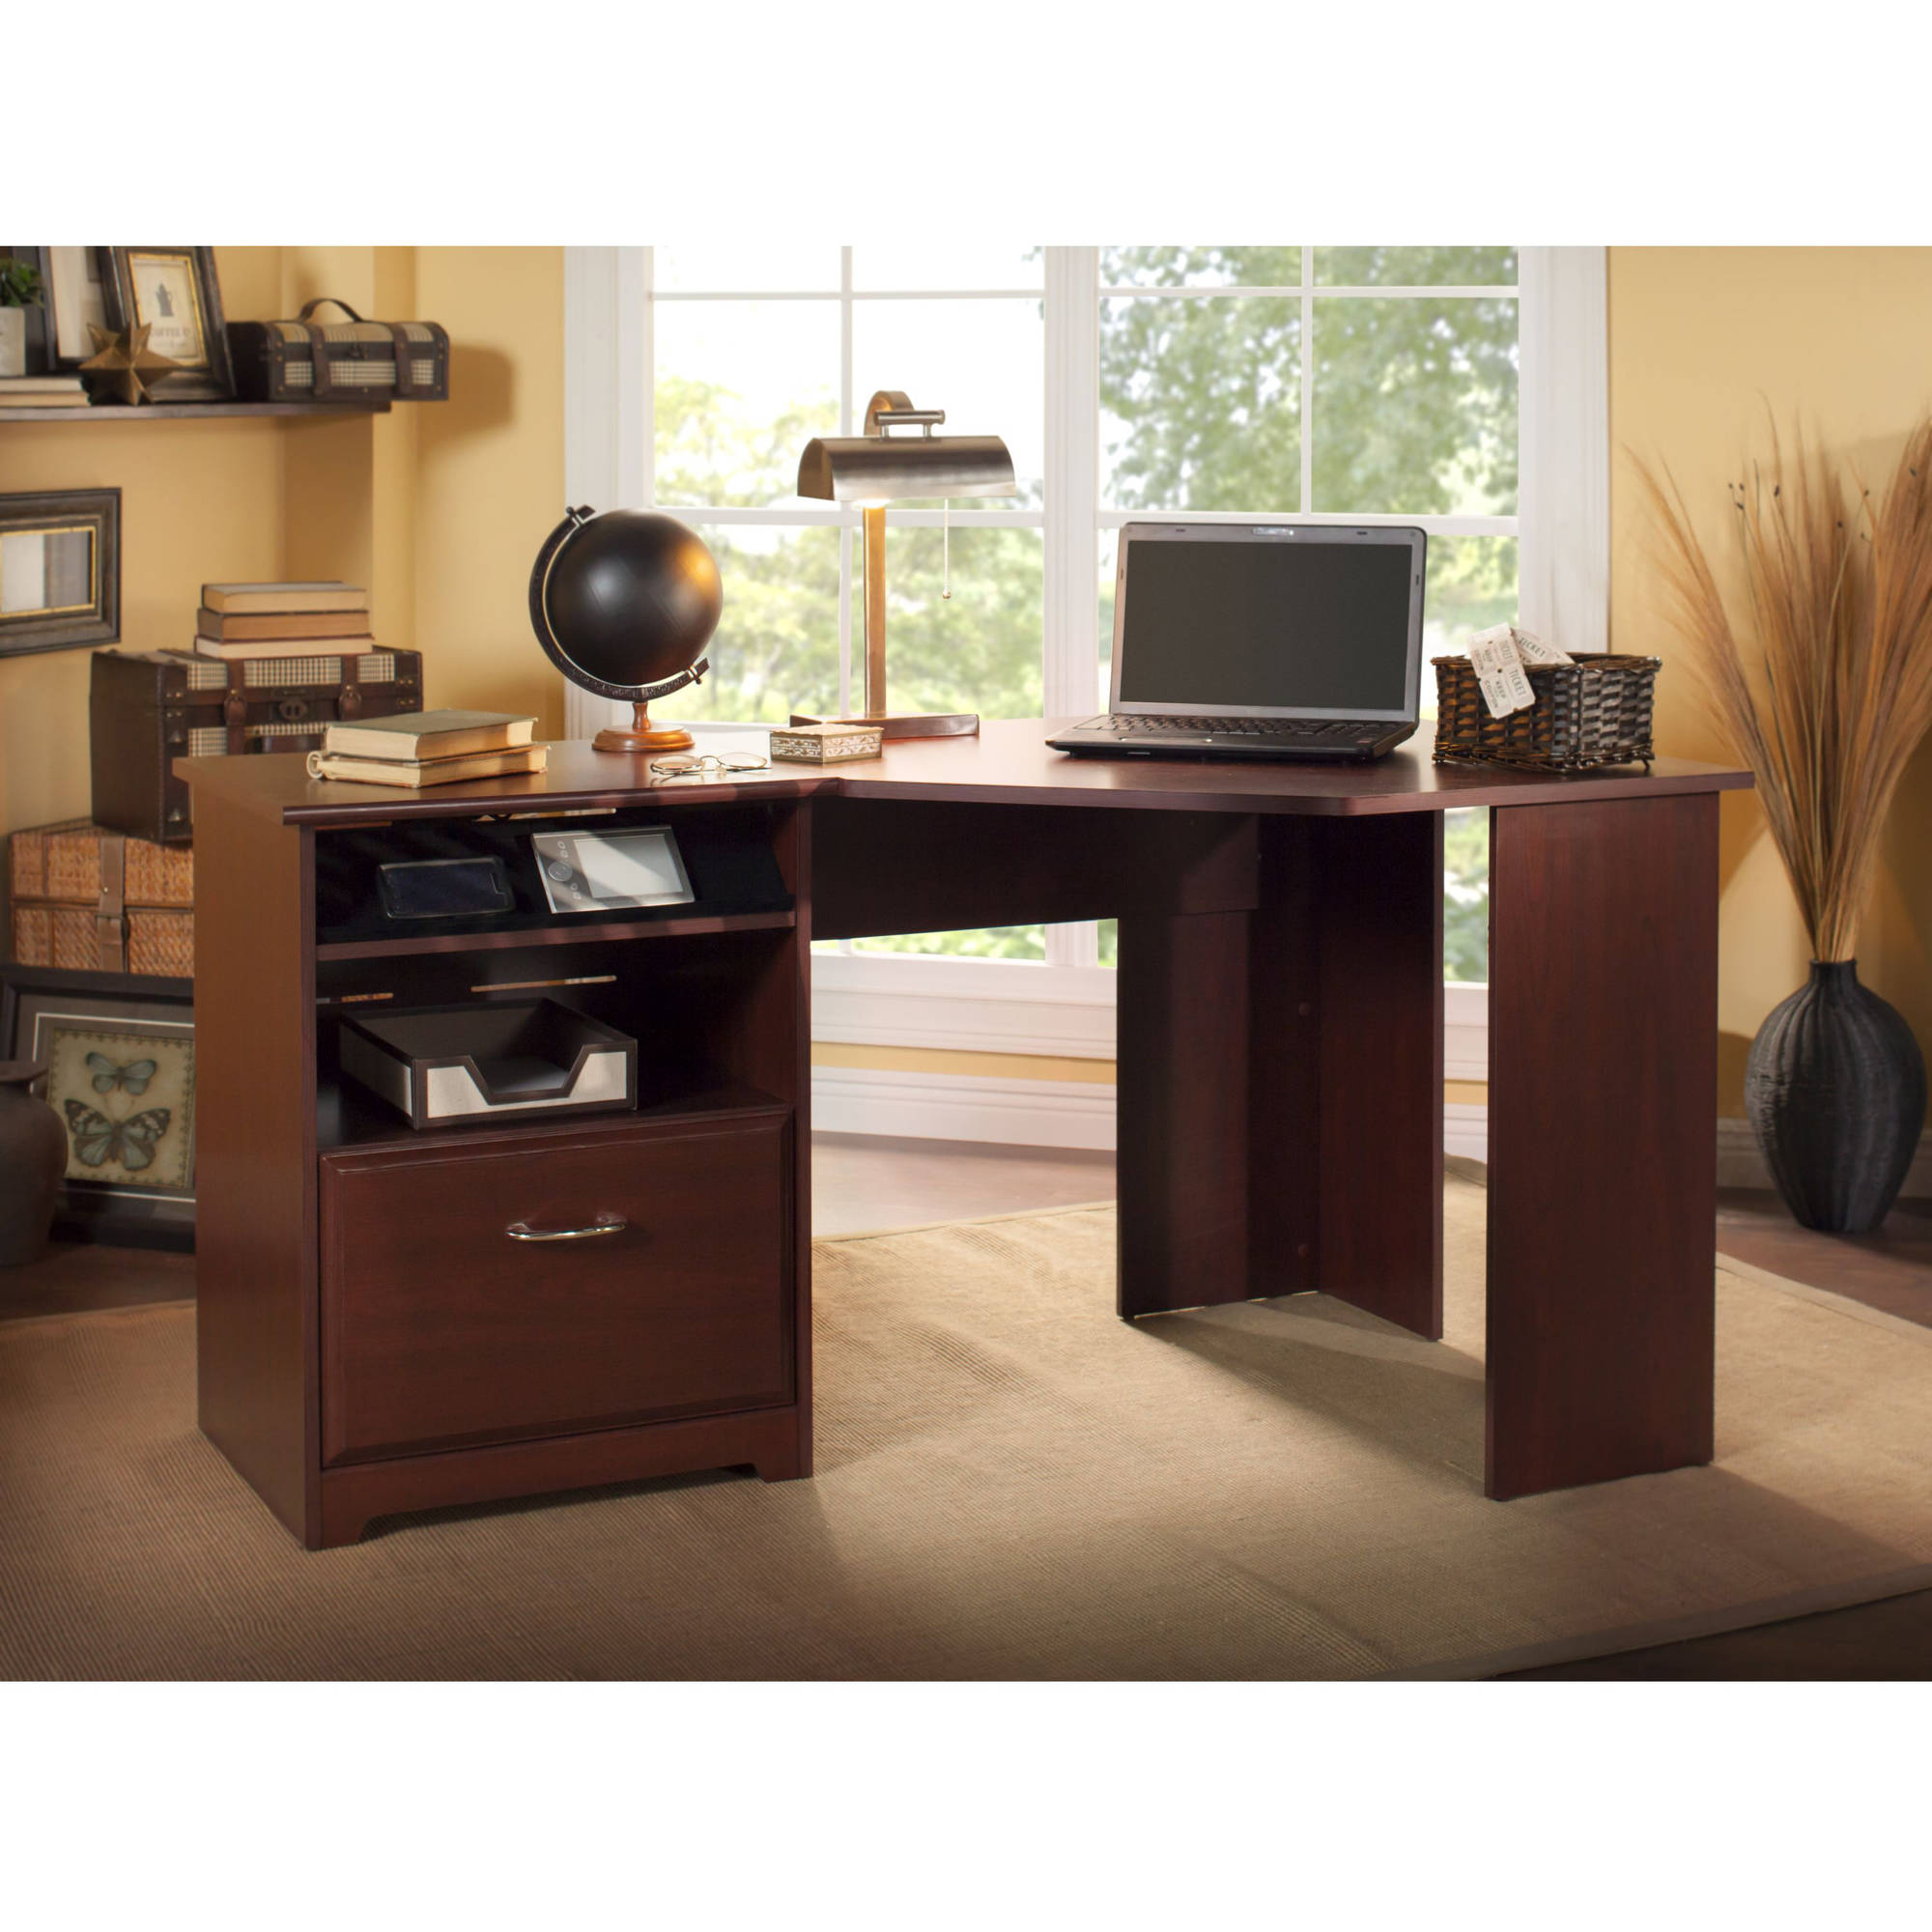 . Bush Furniture Cabot Corner Desk   Walmart com